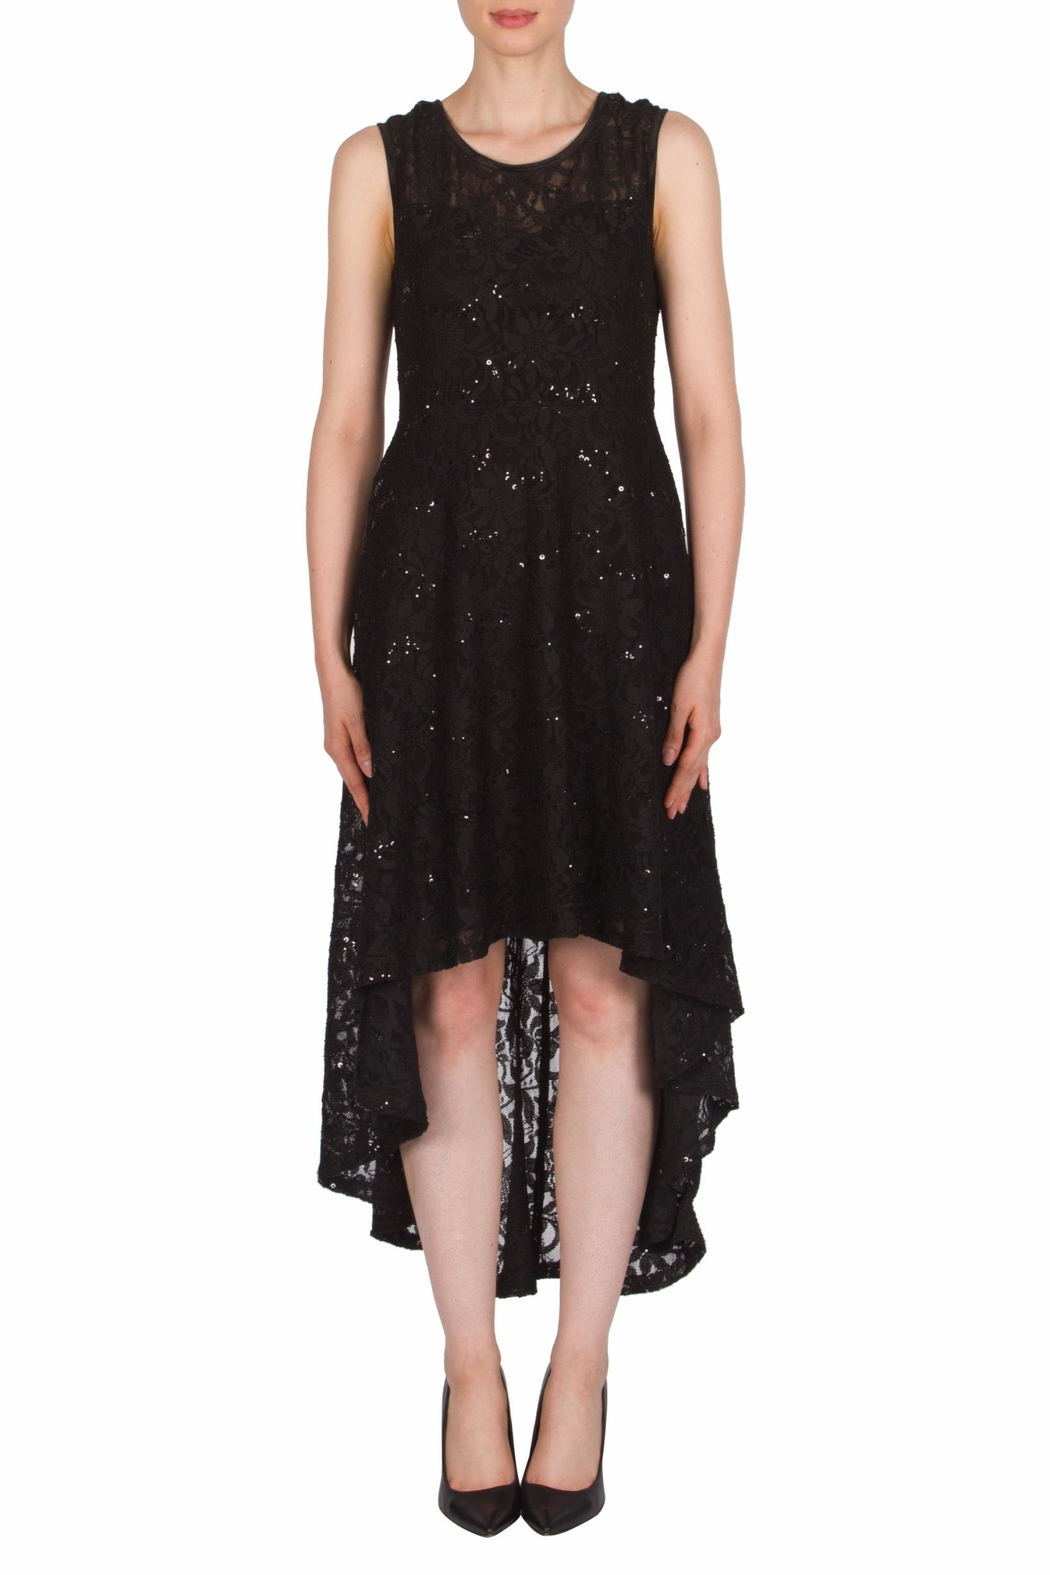 6bdd513dc1 Joseph Ribkoff High Low Lace Dress from New Jersey by Sabine s ...